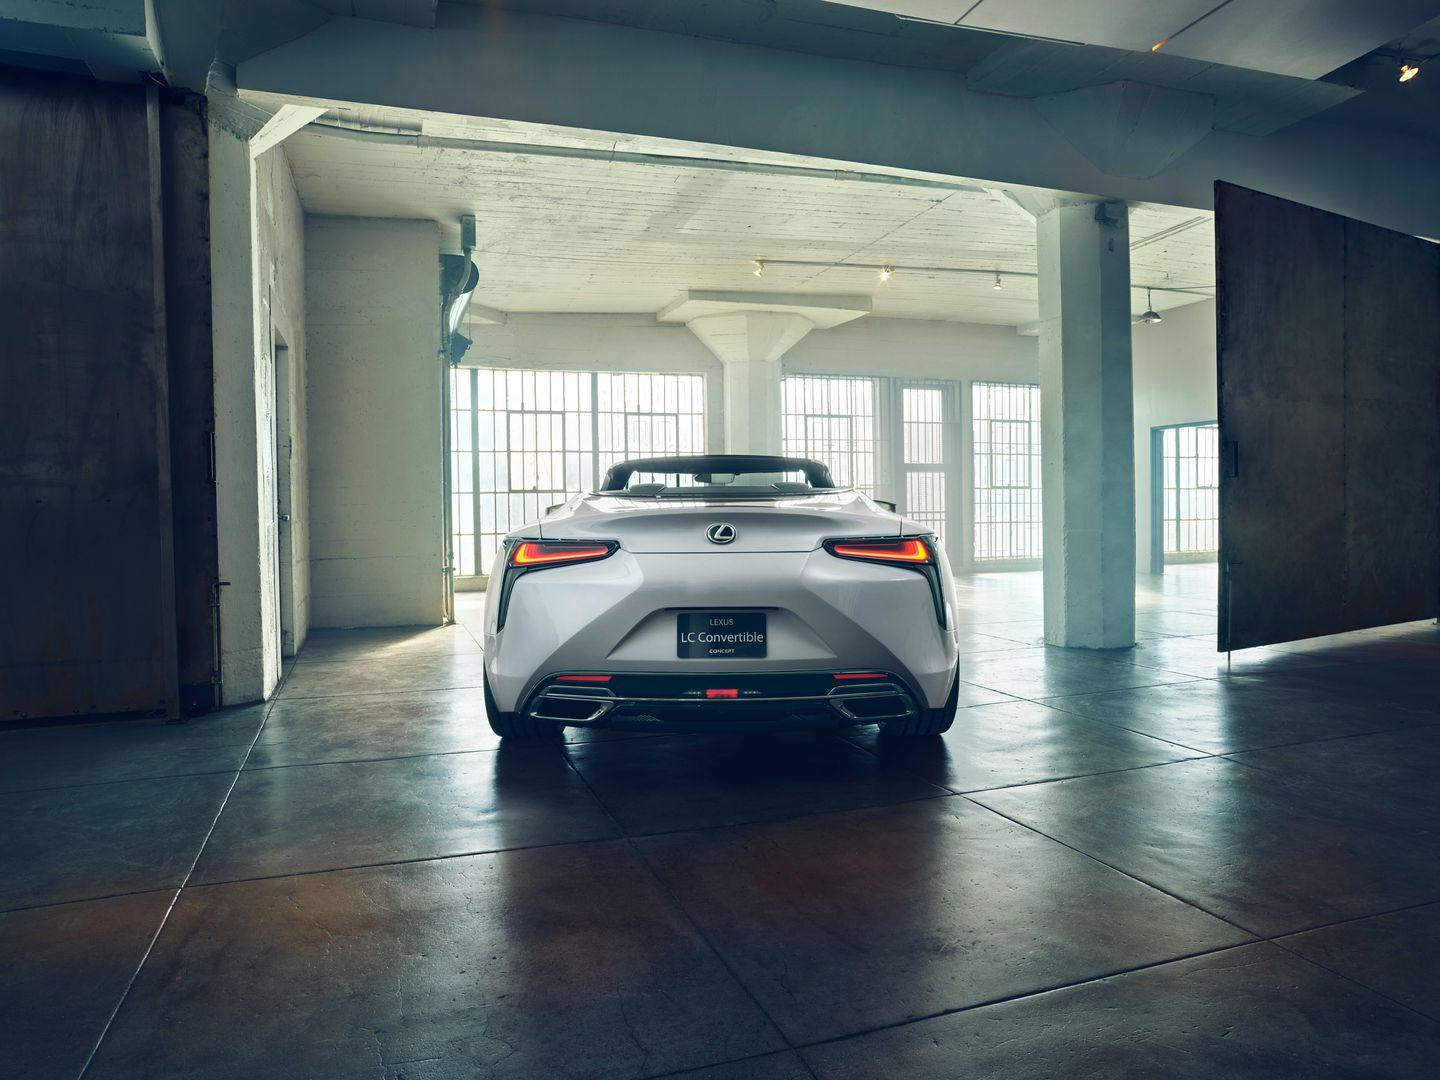 <p>From where we're sitting, little about the convertible concept seems conceptual-without a doubt, this is a production-ready vehicle (likely a chopped-up series-production LC coupe), albeit wearing too-big (and very attractive) 22-inch wheels. </p>